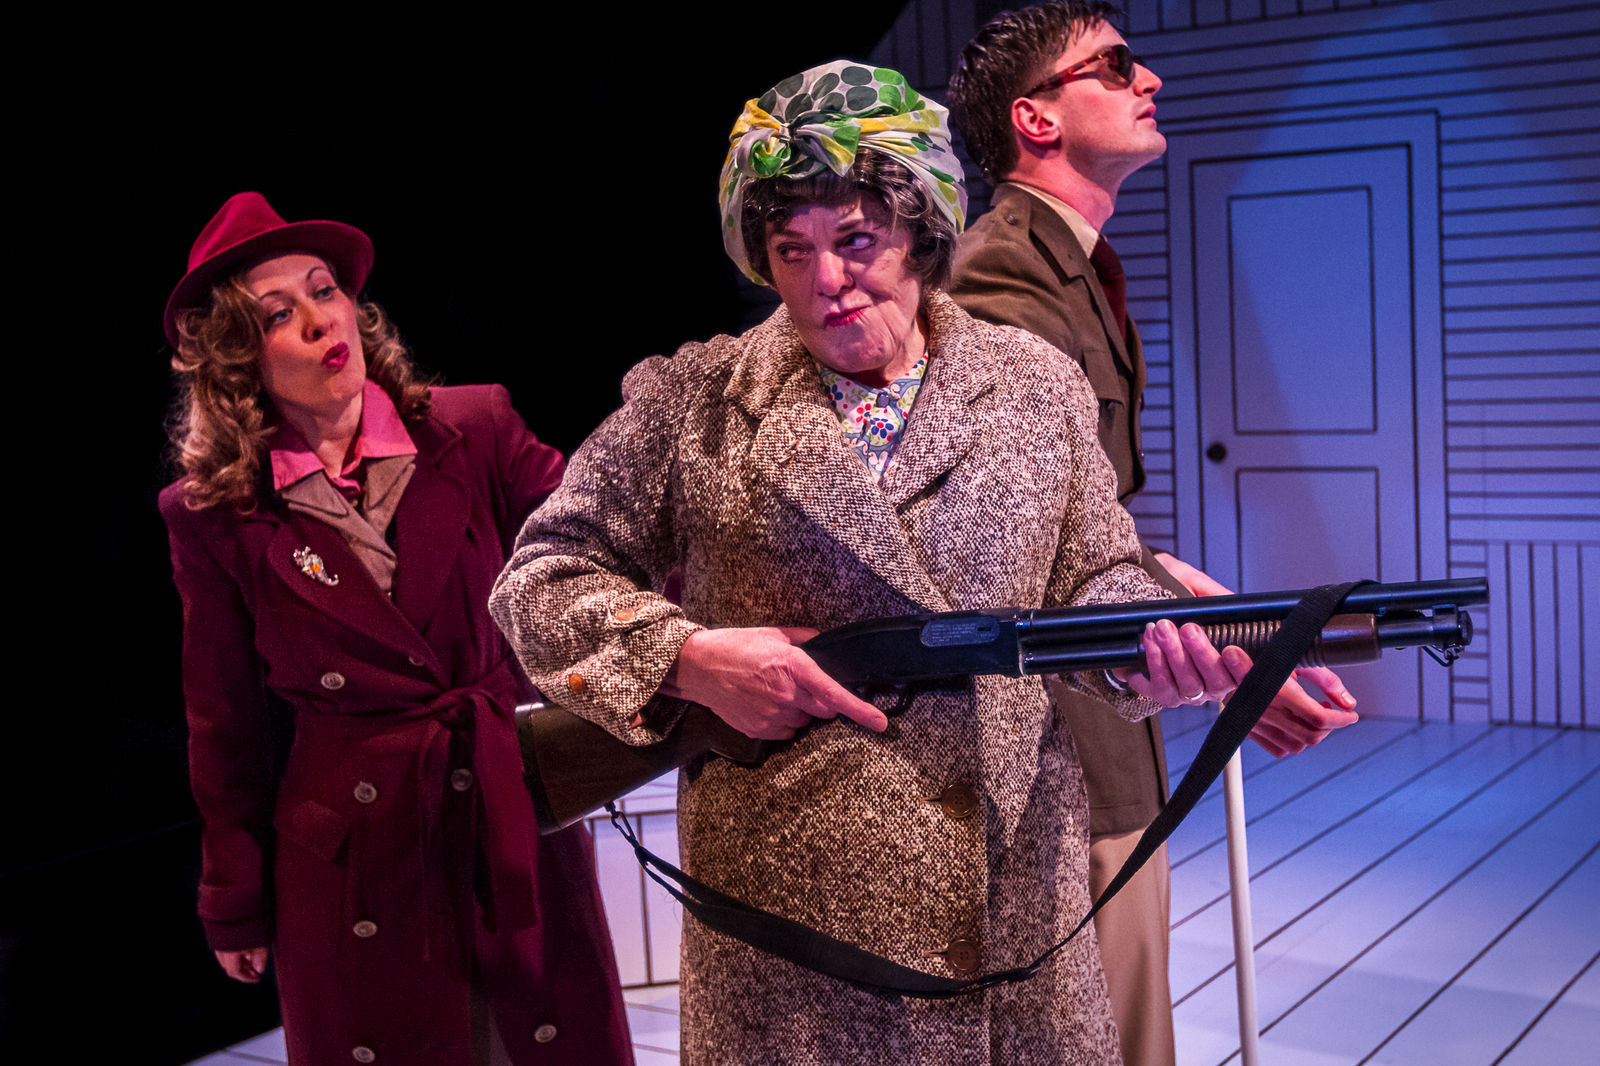 Red herring artistsrep vallandrum vanao brien joshuaweinstein photo by owencarey euolch